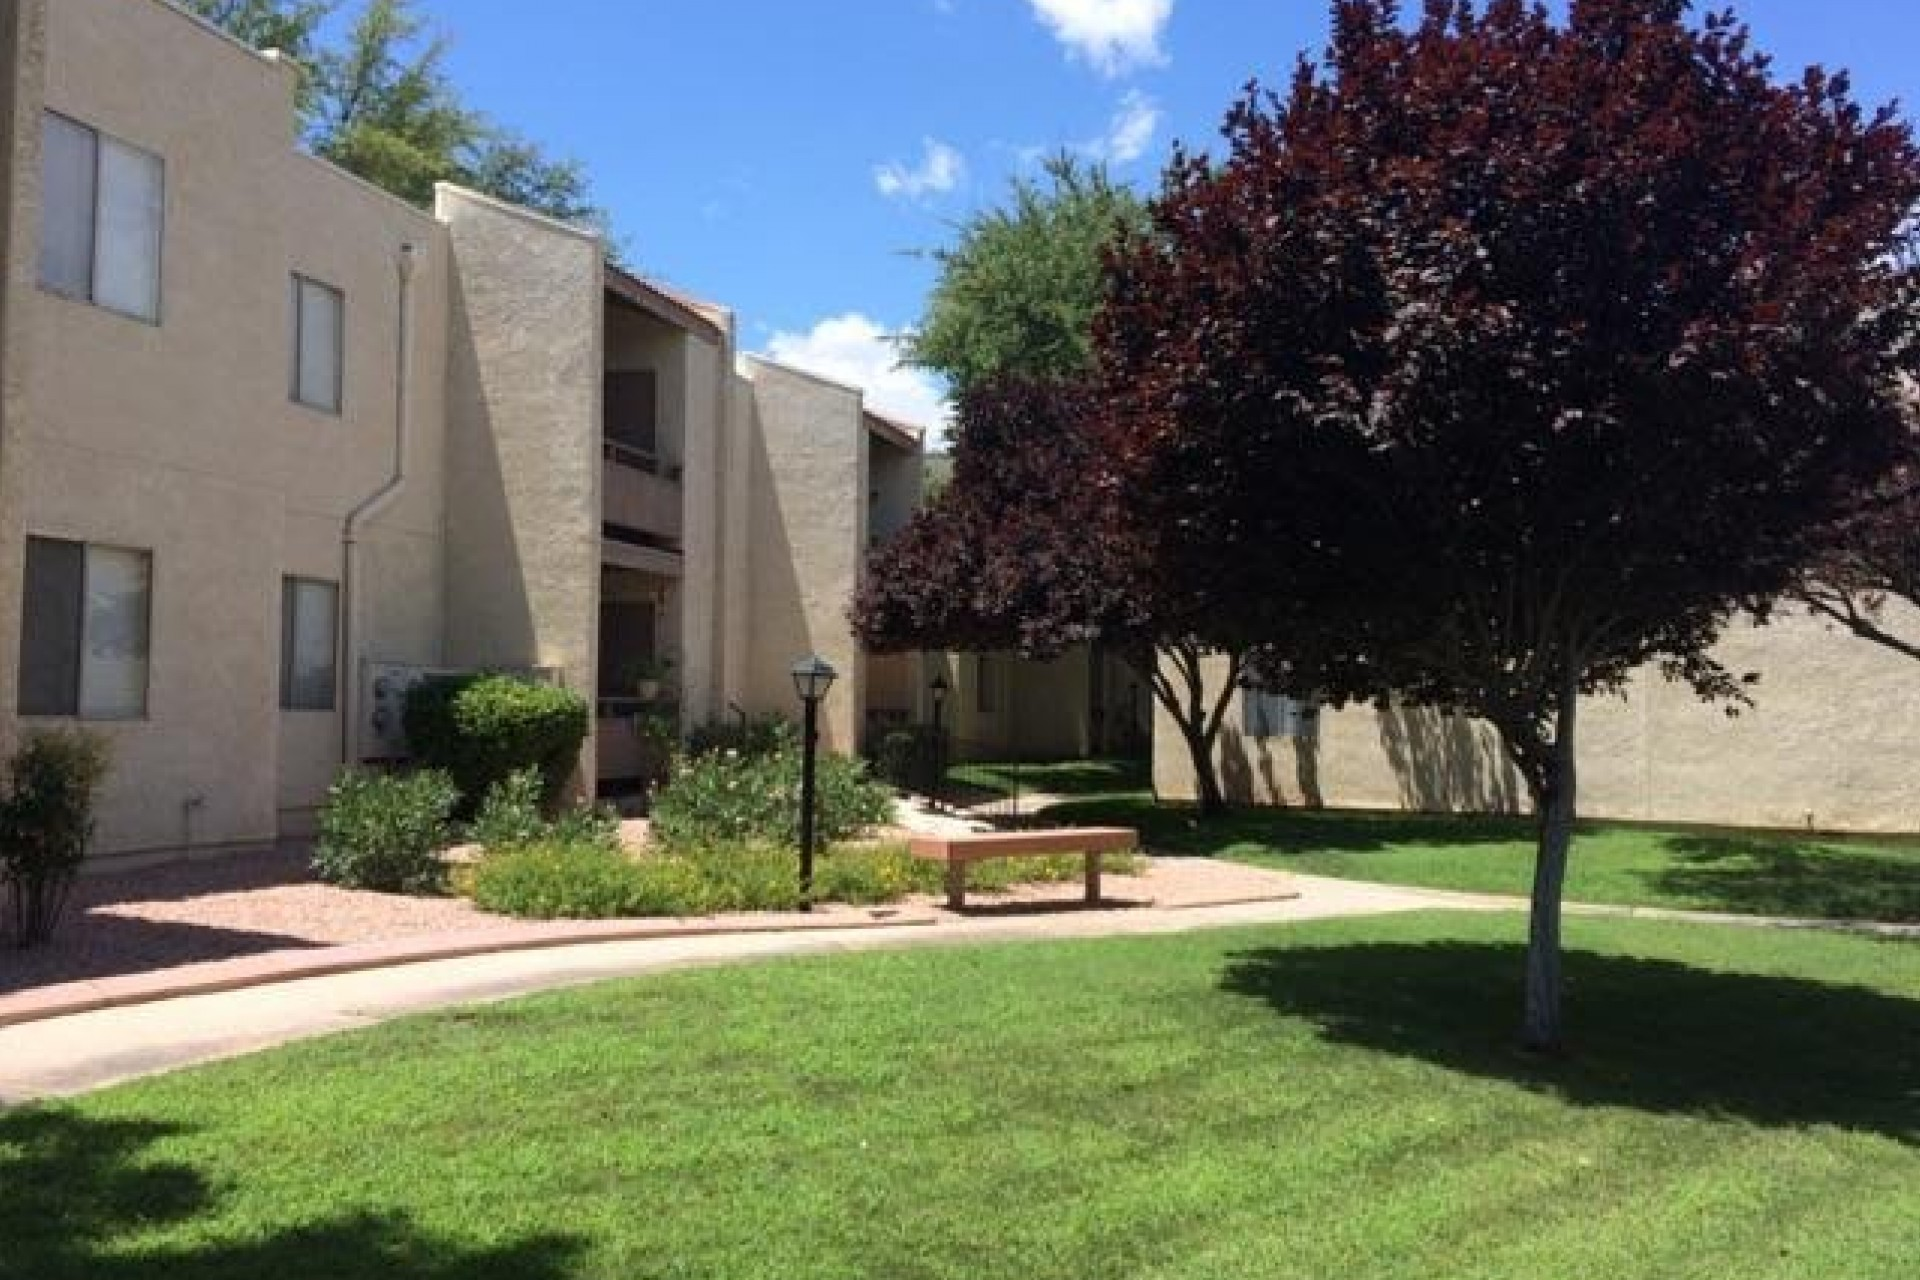 Saguaro Villas Apartments exterior and landscaping